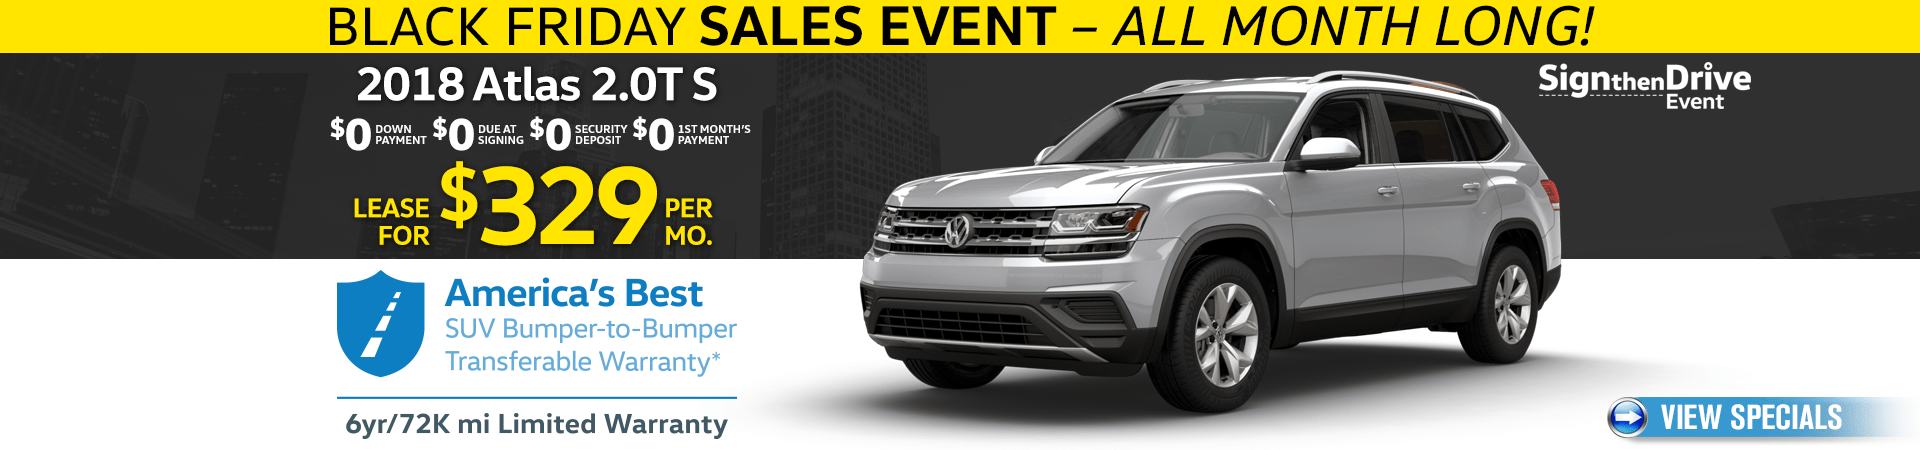 VW Sign then Drive Event - Atlas Offer